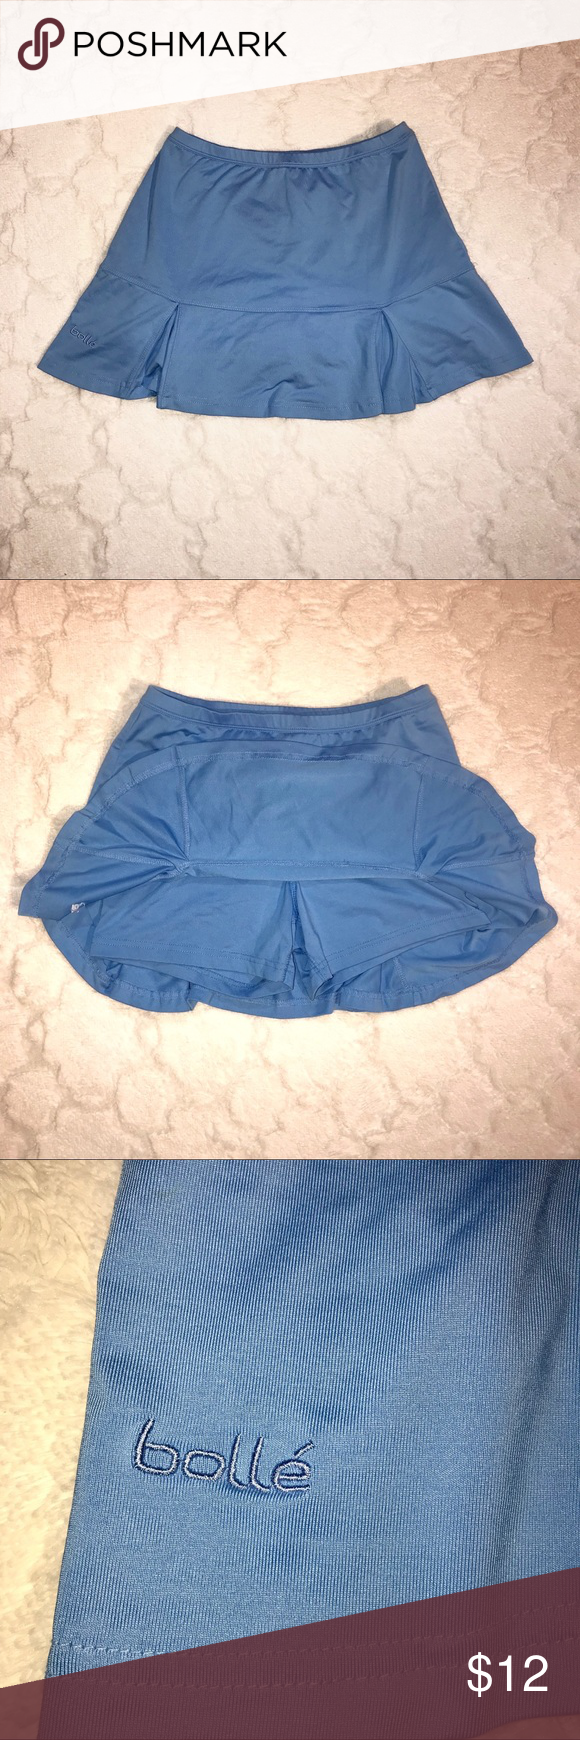 Light Blue Tennis Skort (Skirt & Shorts) Light blue Tennis skirt with shorts underneath.  -Cotton & Spandex -Never Worn  -Size XS bolle Skirts #lightblueshorts